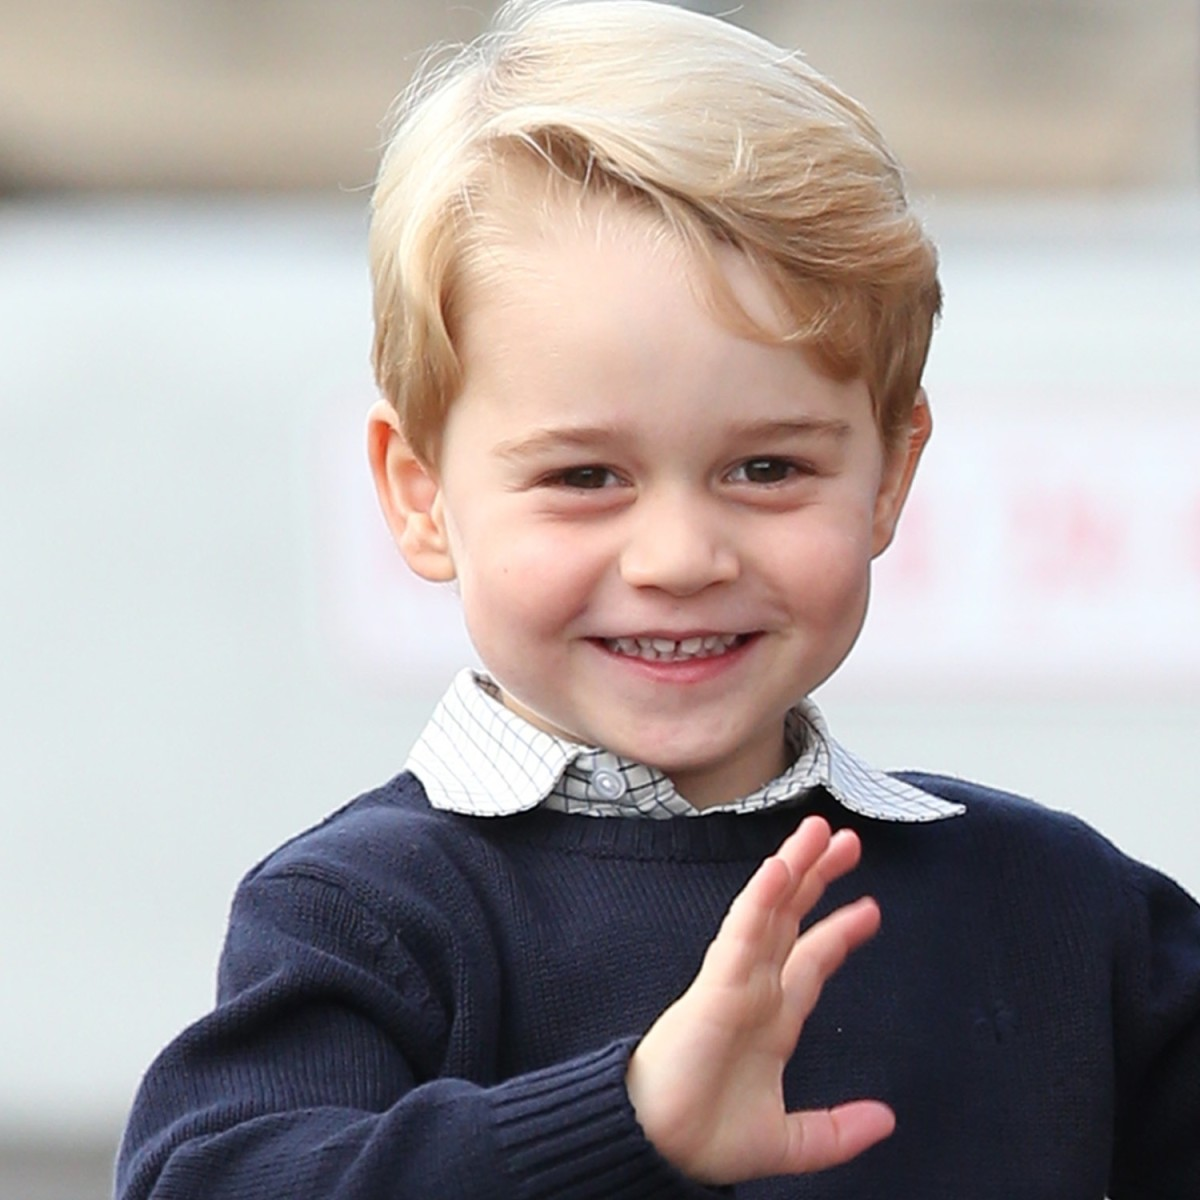 Prince George photo via Getty Images